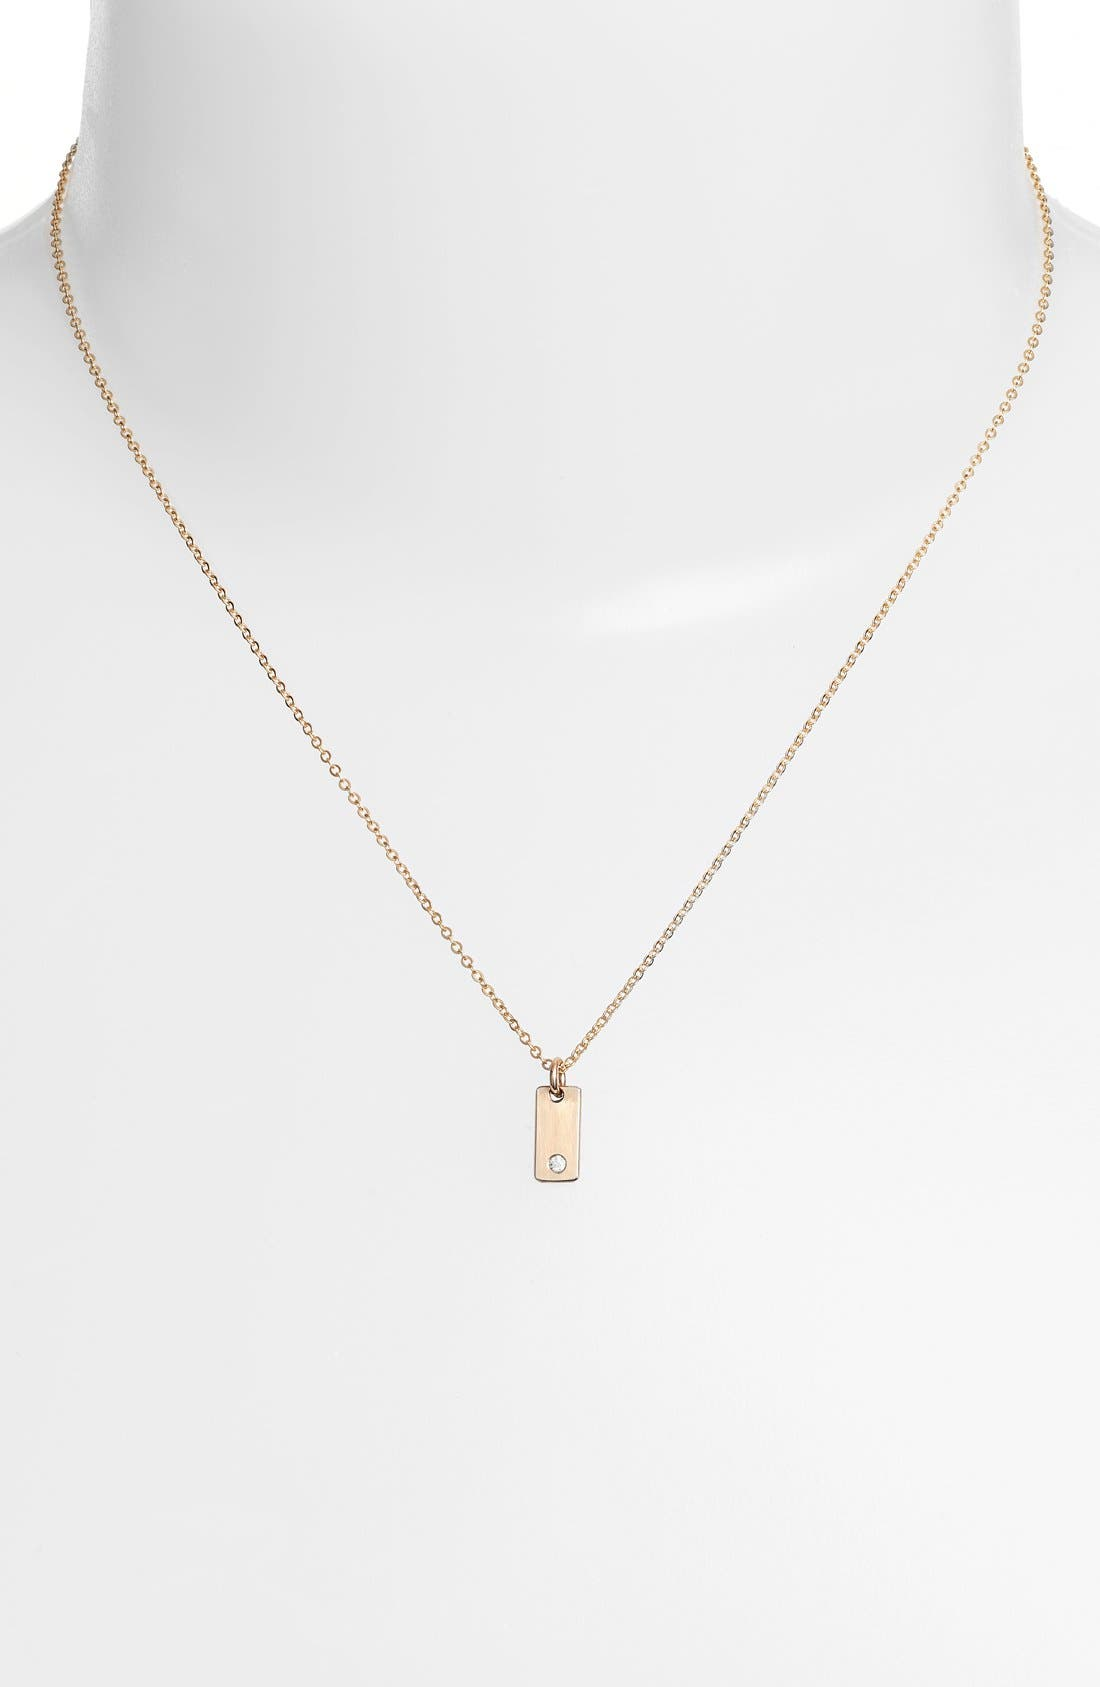 Diamond Bar Pendant Necklace,                             Alternate thumbnail 2, color,                             Gold